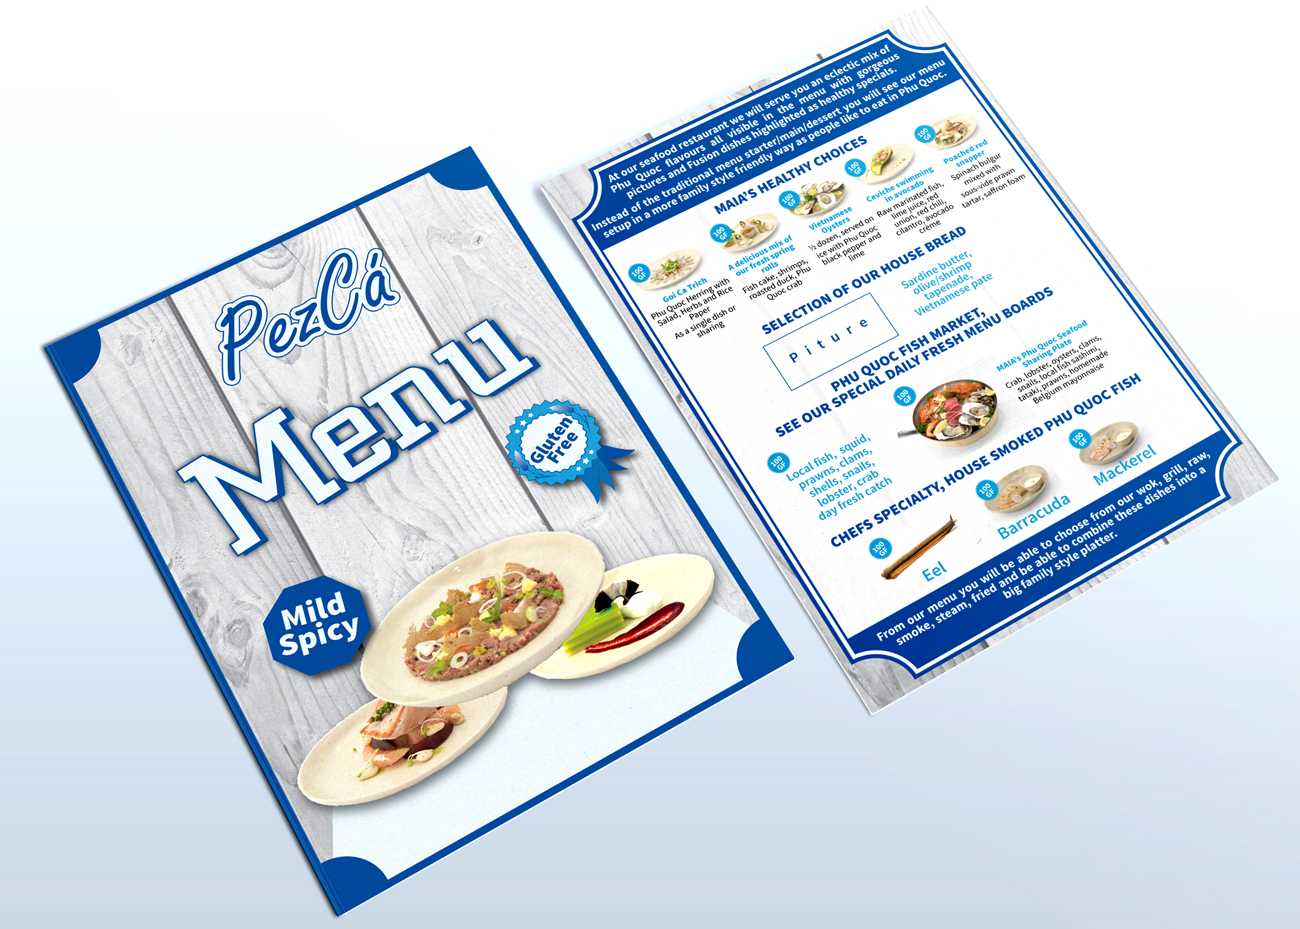 elegant serious seafood restaurant menu design for a company by